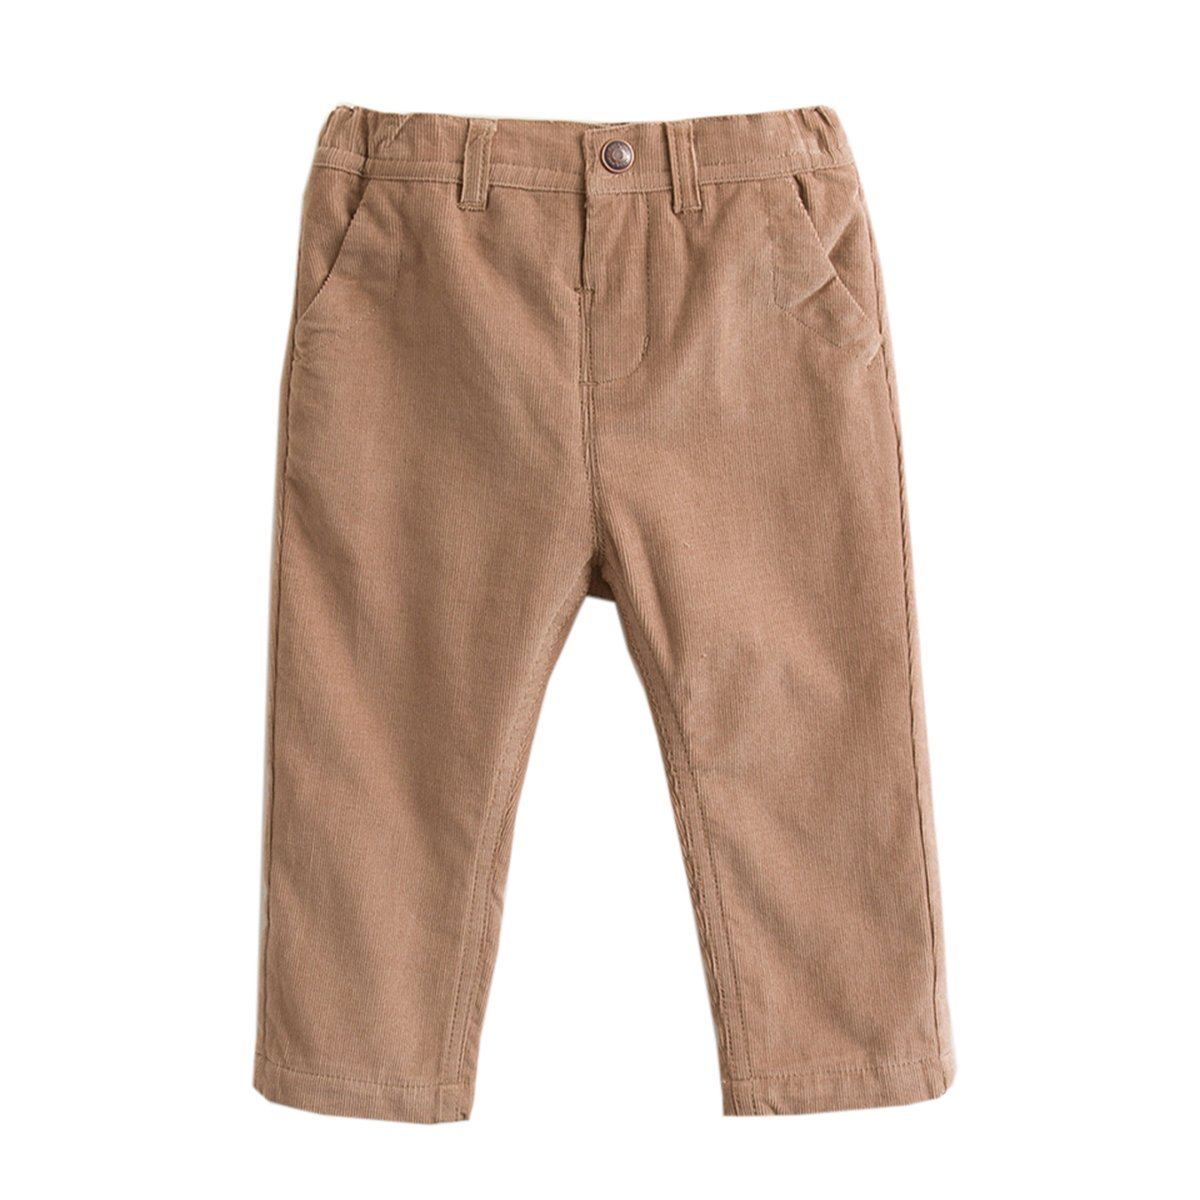 marc janie Baby Toddler Boys Corduroy Solid Color Pants